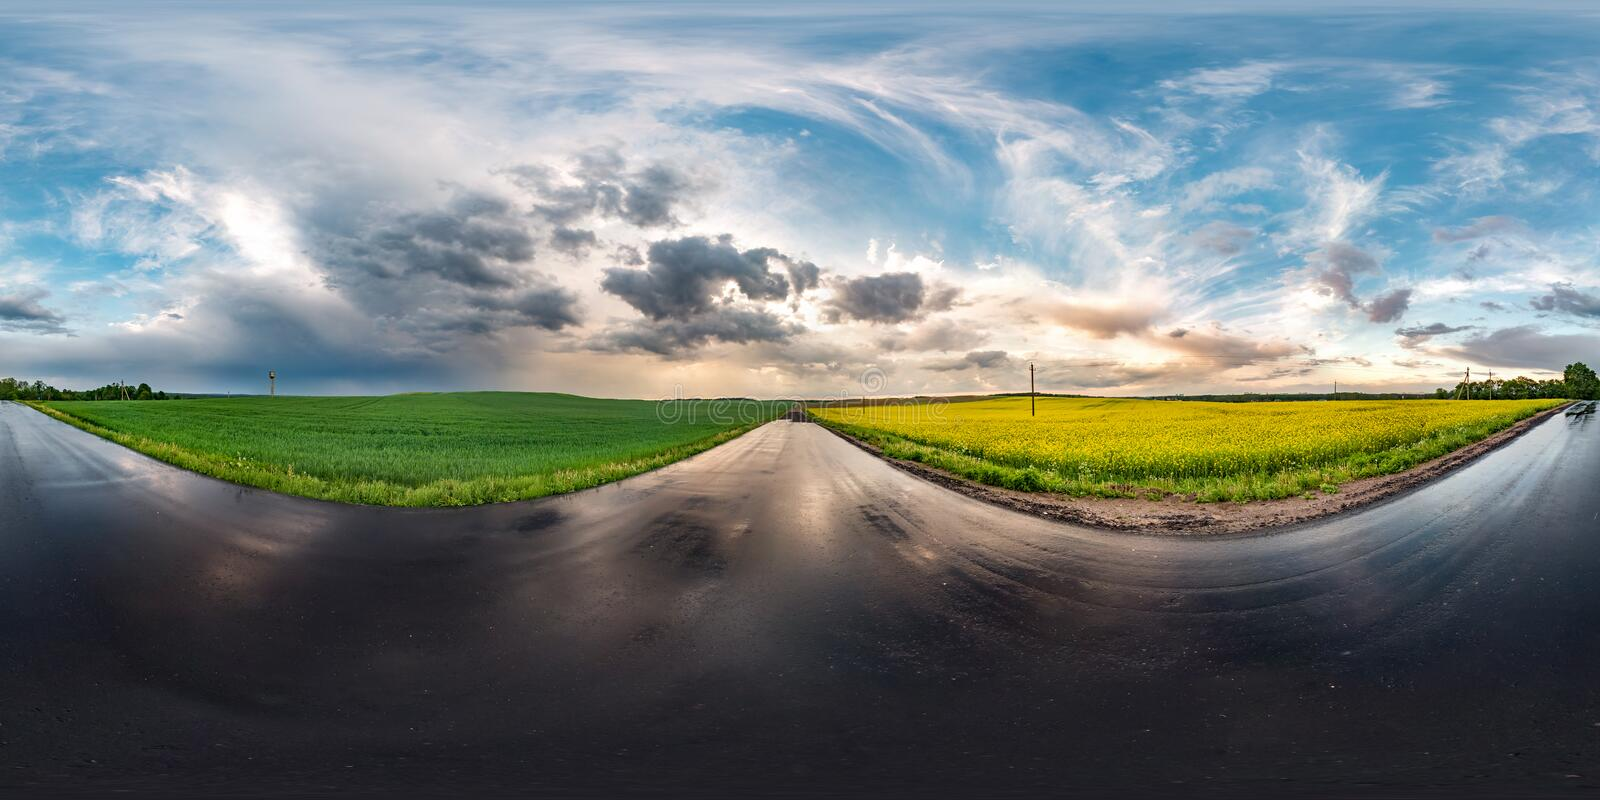 Full seamless spherical hdri panorama 360 degrees angle view on wet asphalt road among canola fields in evening sunset after storm. With awesome clouds in royalty free stock photos